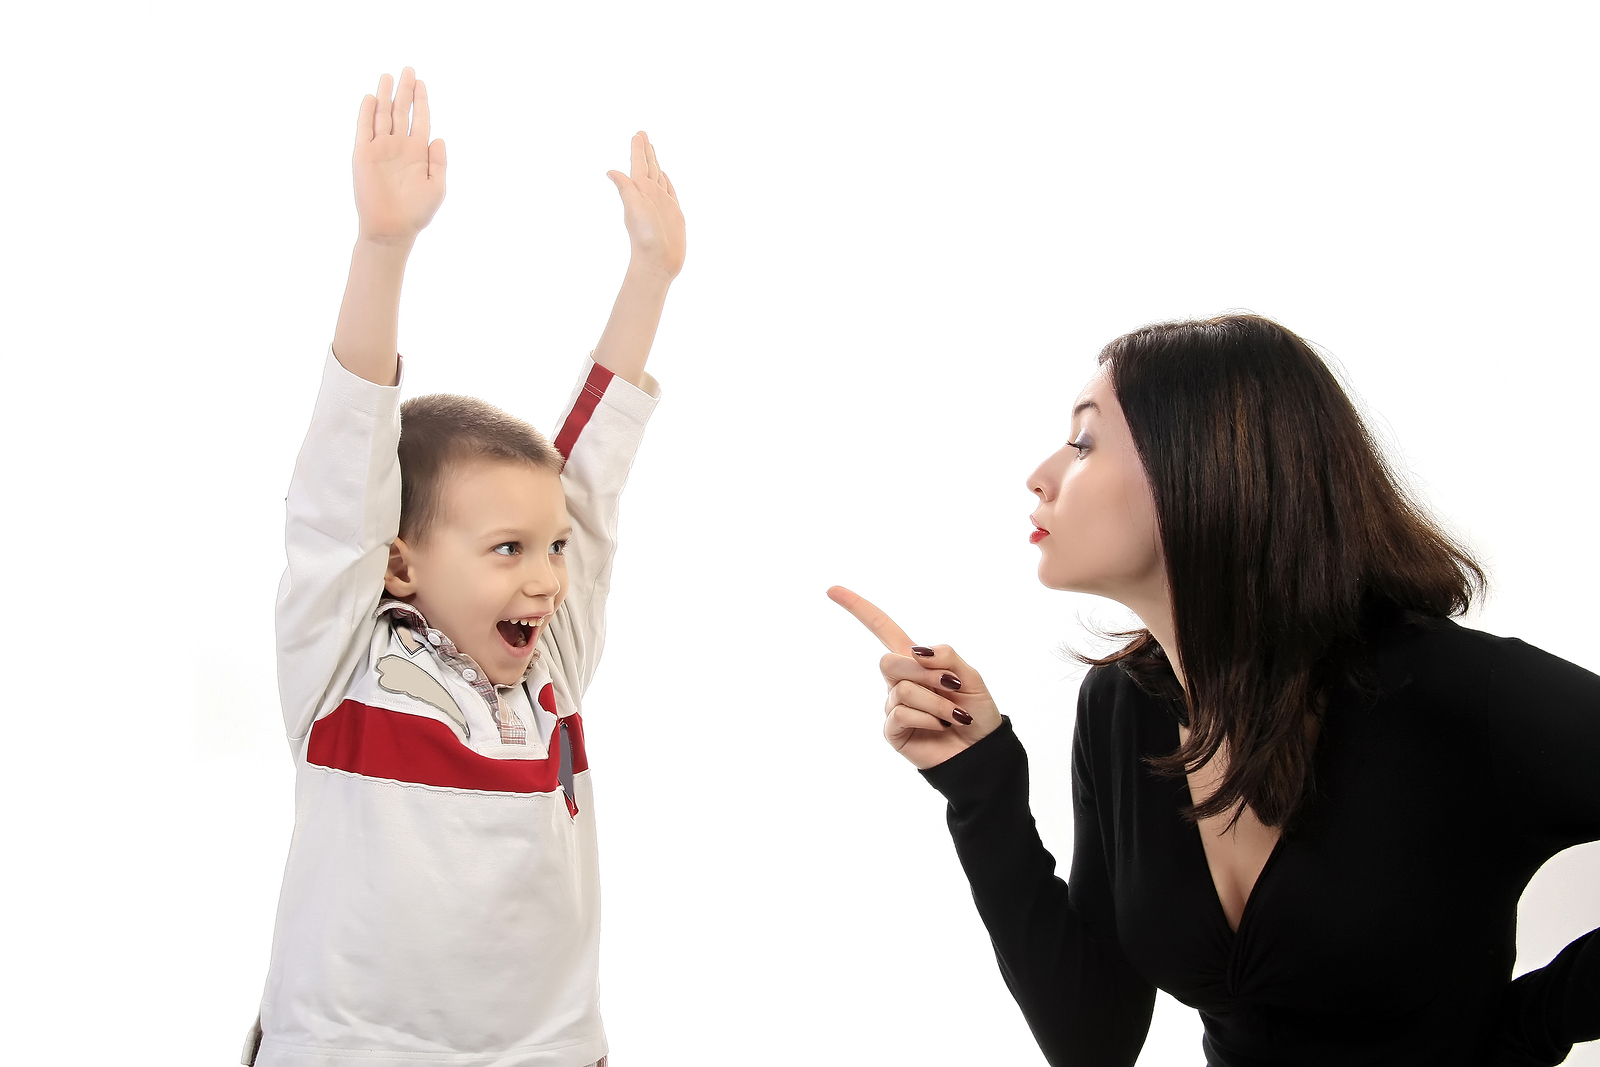 parenting styles and discipline These parents use stern discipline and often employ punishment to control children's behavior parenting styles vs parenting practices.